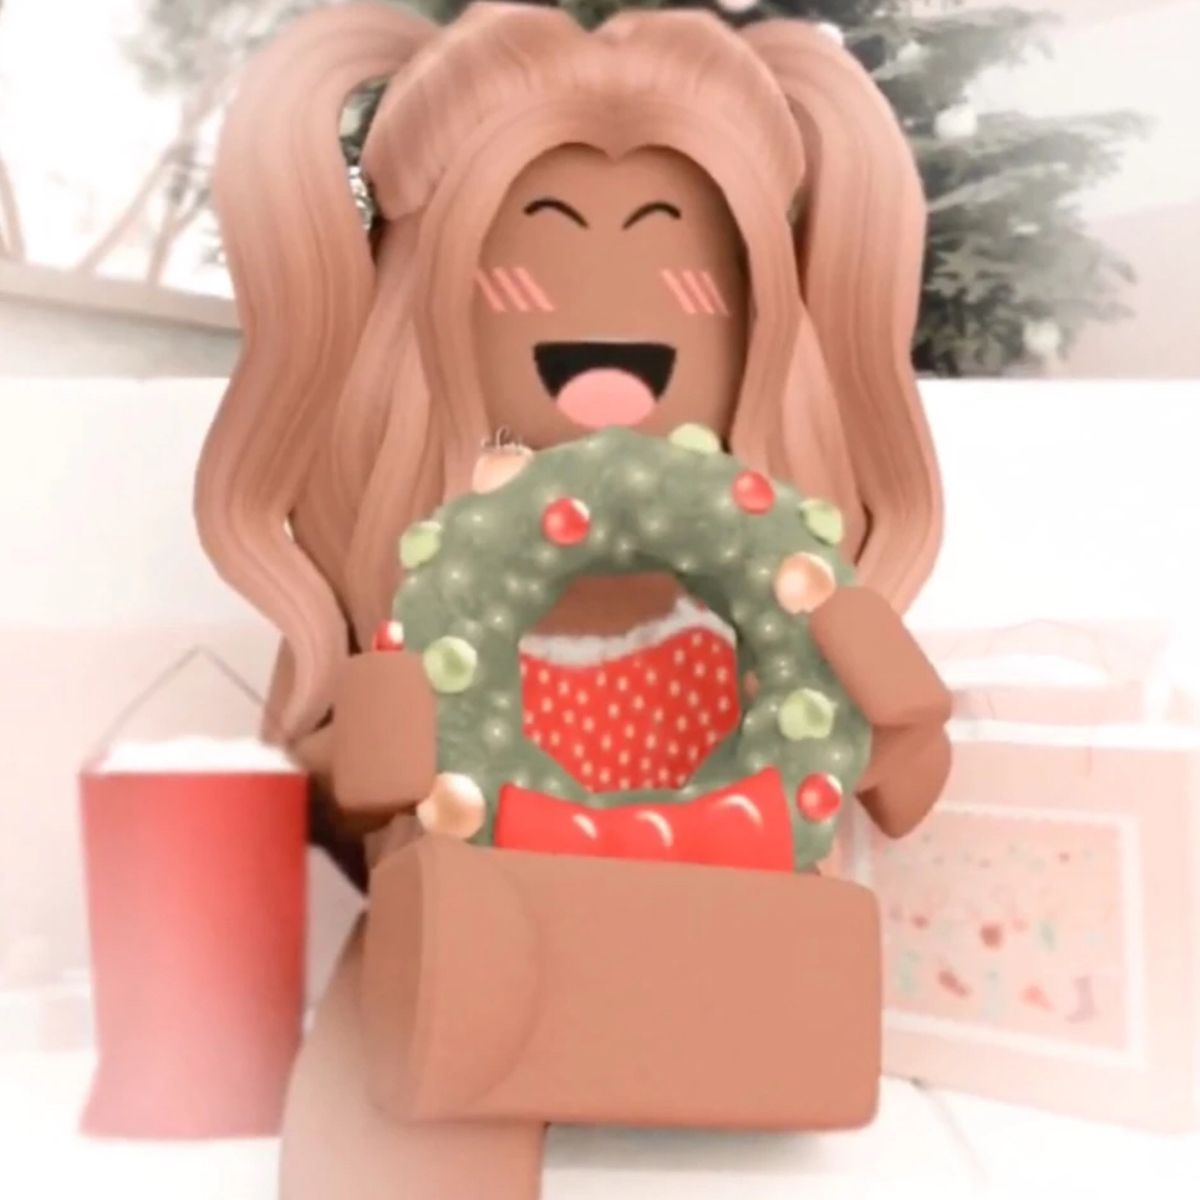 Christmas Gfx Roblox Animation Cute Tumblr Wallpaper Roblox Pictures